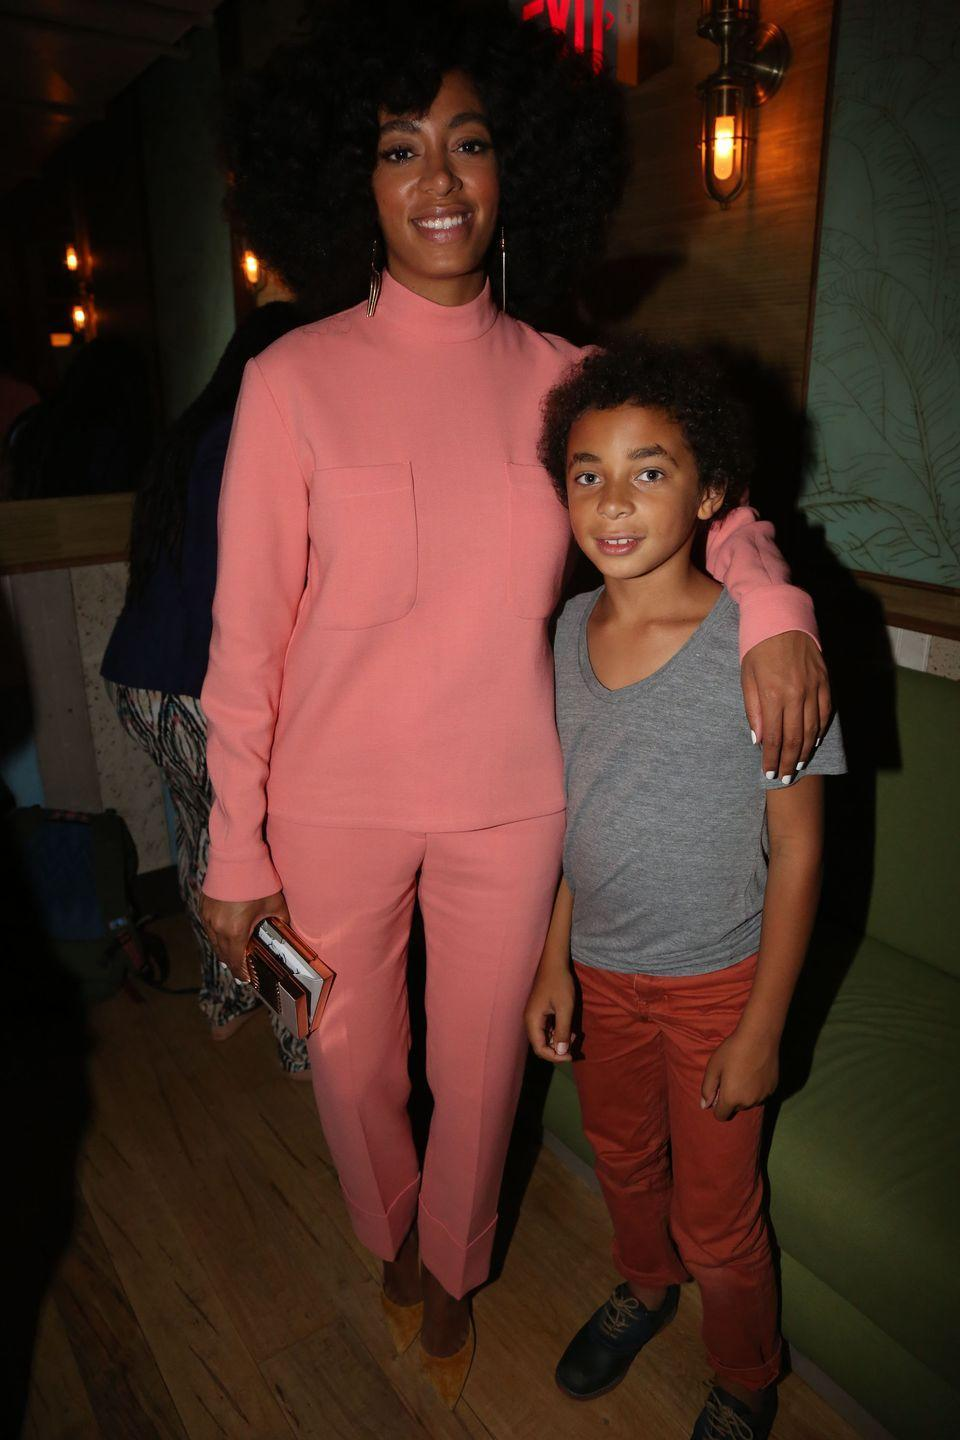 """<p>""""I think it's really important for <a href=""""https://www.vibe.com/2012/02/leading-lady-solange-covers-rollacoaster-magazine"""" rel=""""nofollow noopener"""" target=""""_blank"""" data-ylk=""""slk:every mother"""" class=""""link rapid-noclick-resp"""">every mother</a> to find their own way.""""</p>"""